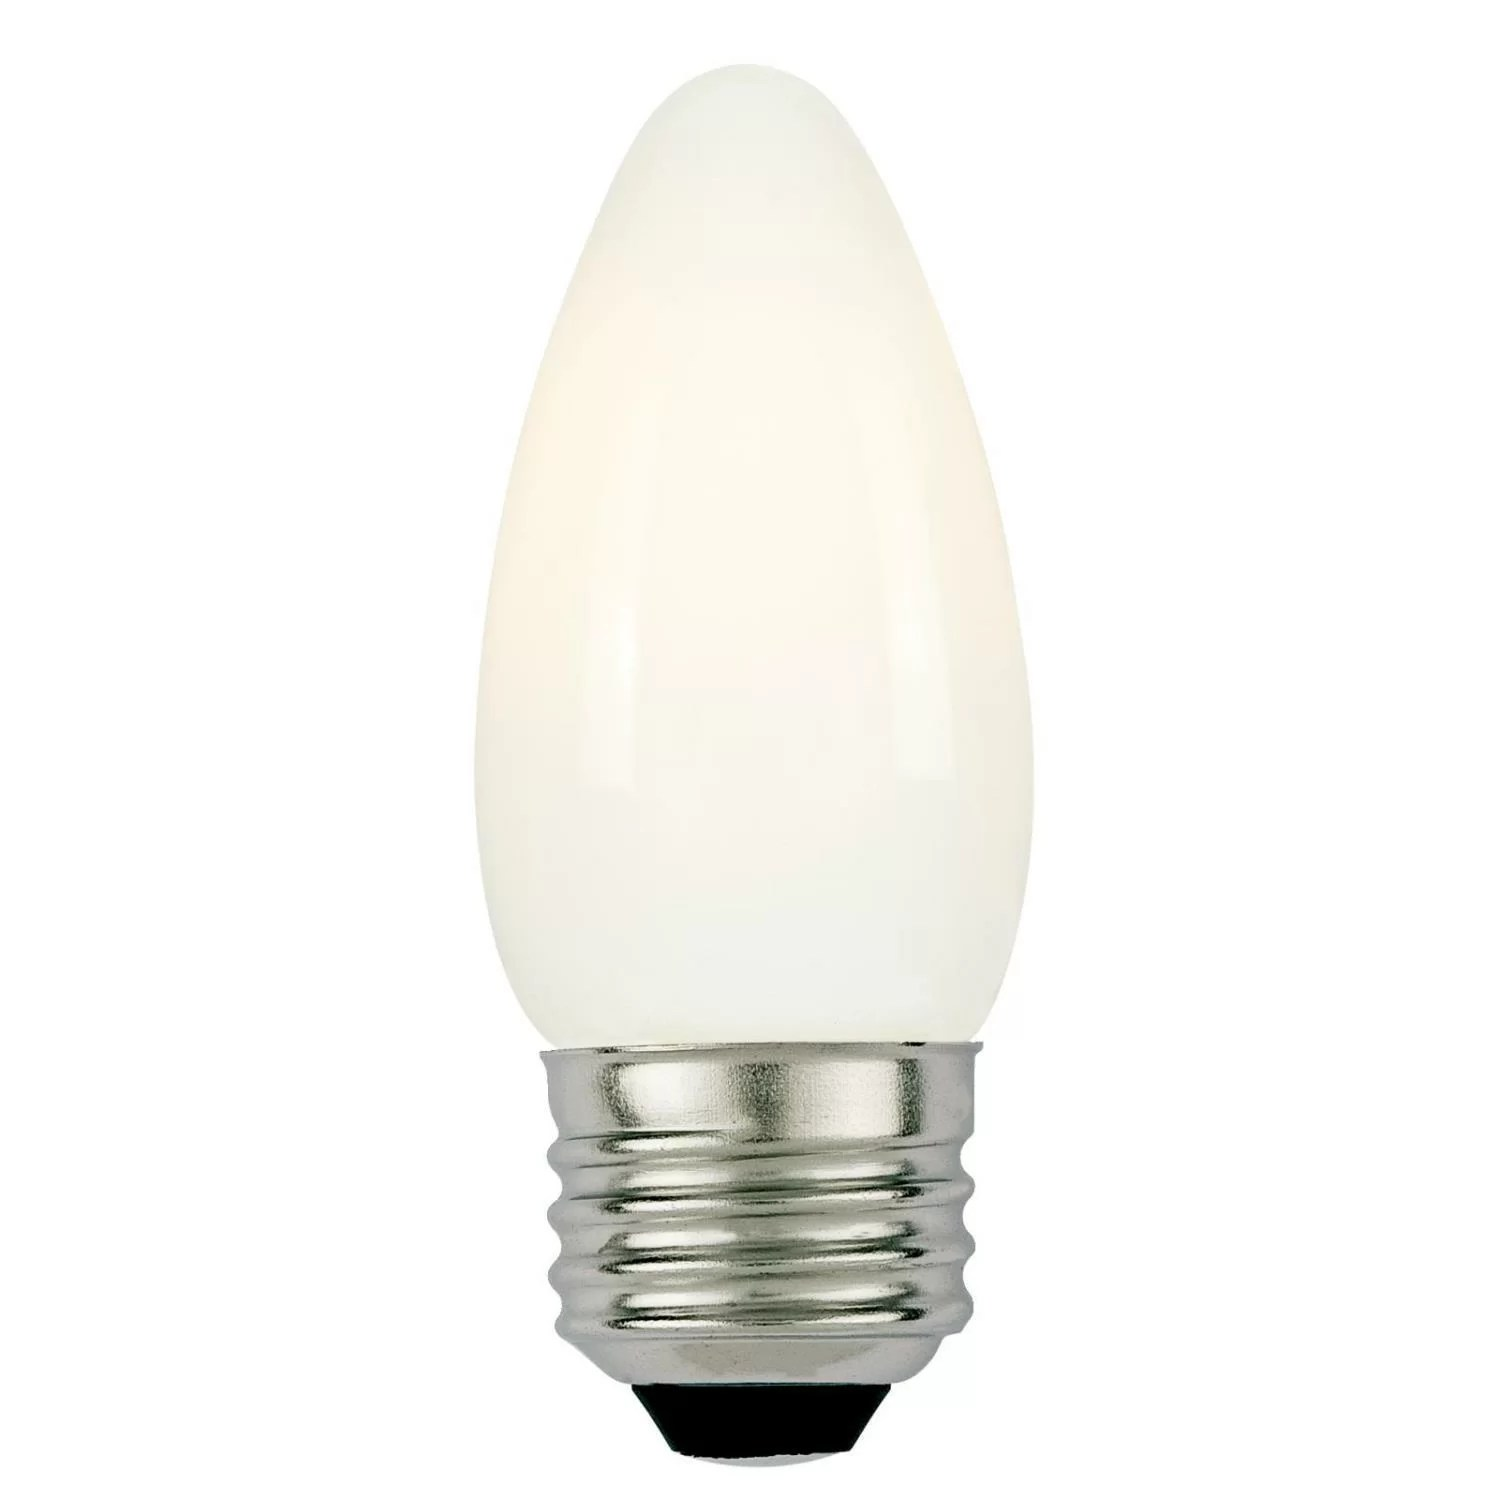 5 Watt Led 5 Watt 60 Watt Equivalent B11 Led Dimmable Light Bulb Warm White 2700k E26 Base